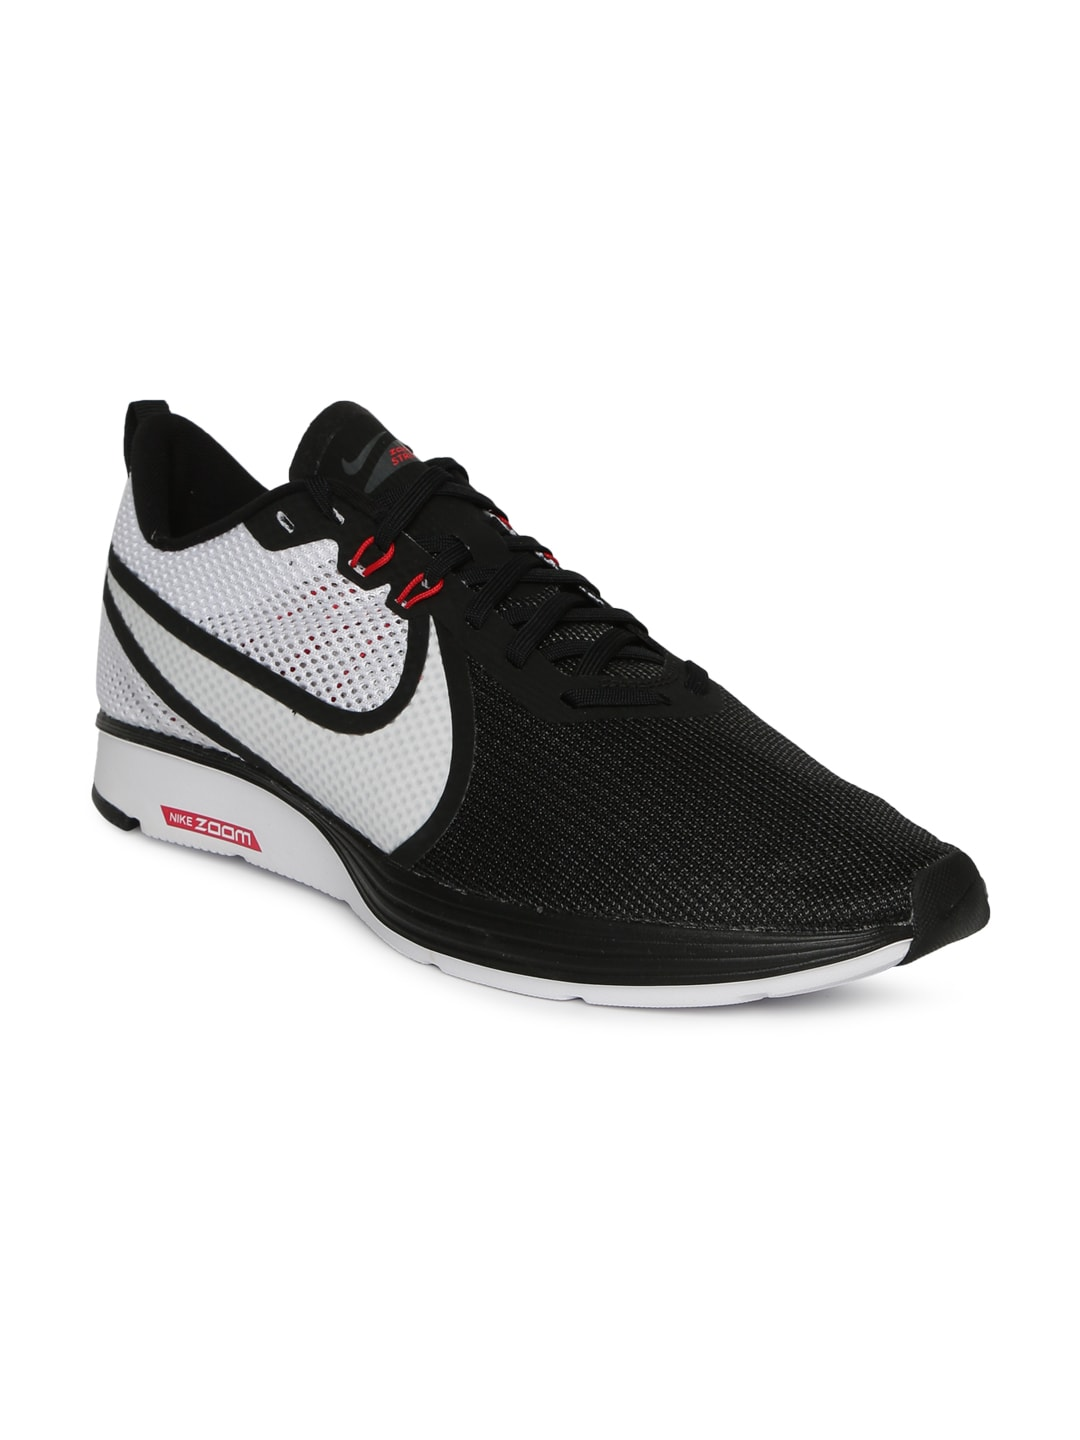 7296ecab33514 Nike Sport Shoe - Buy Nike Sport Shoes At Best Price Online